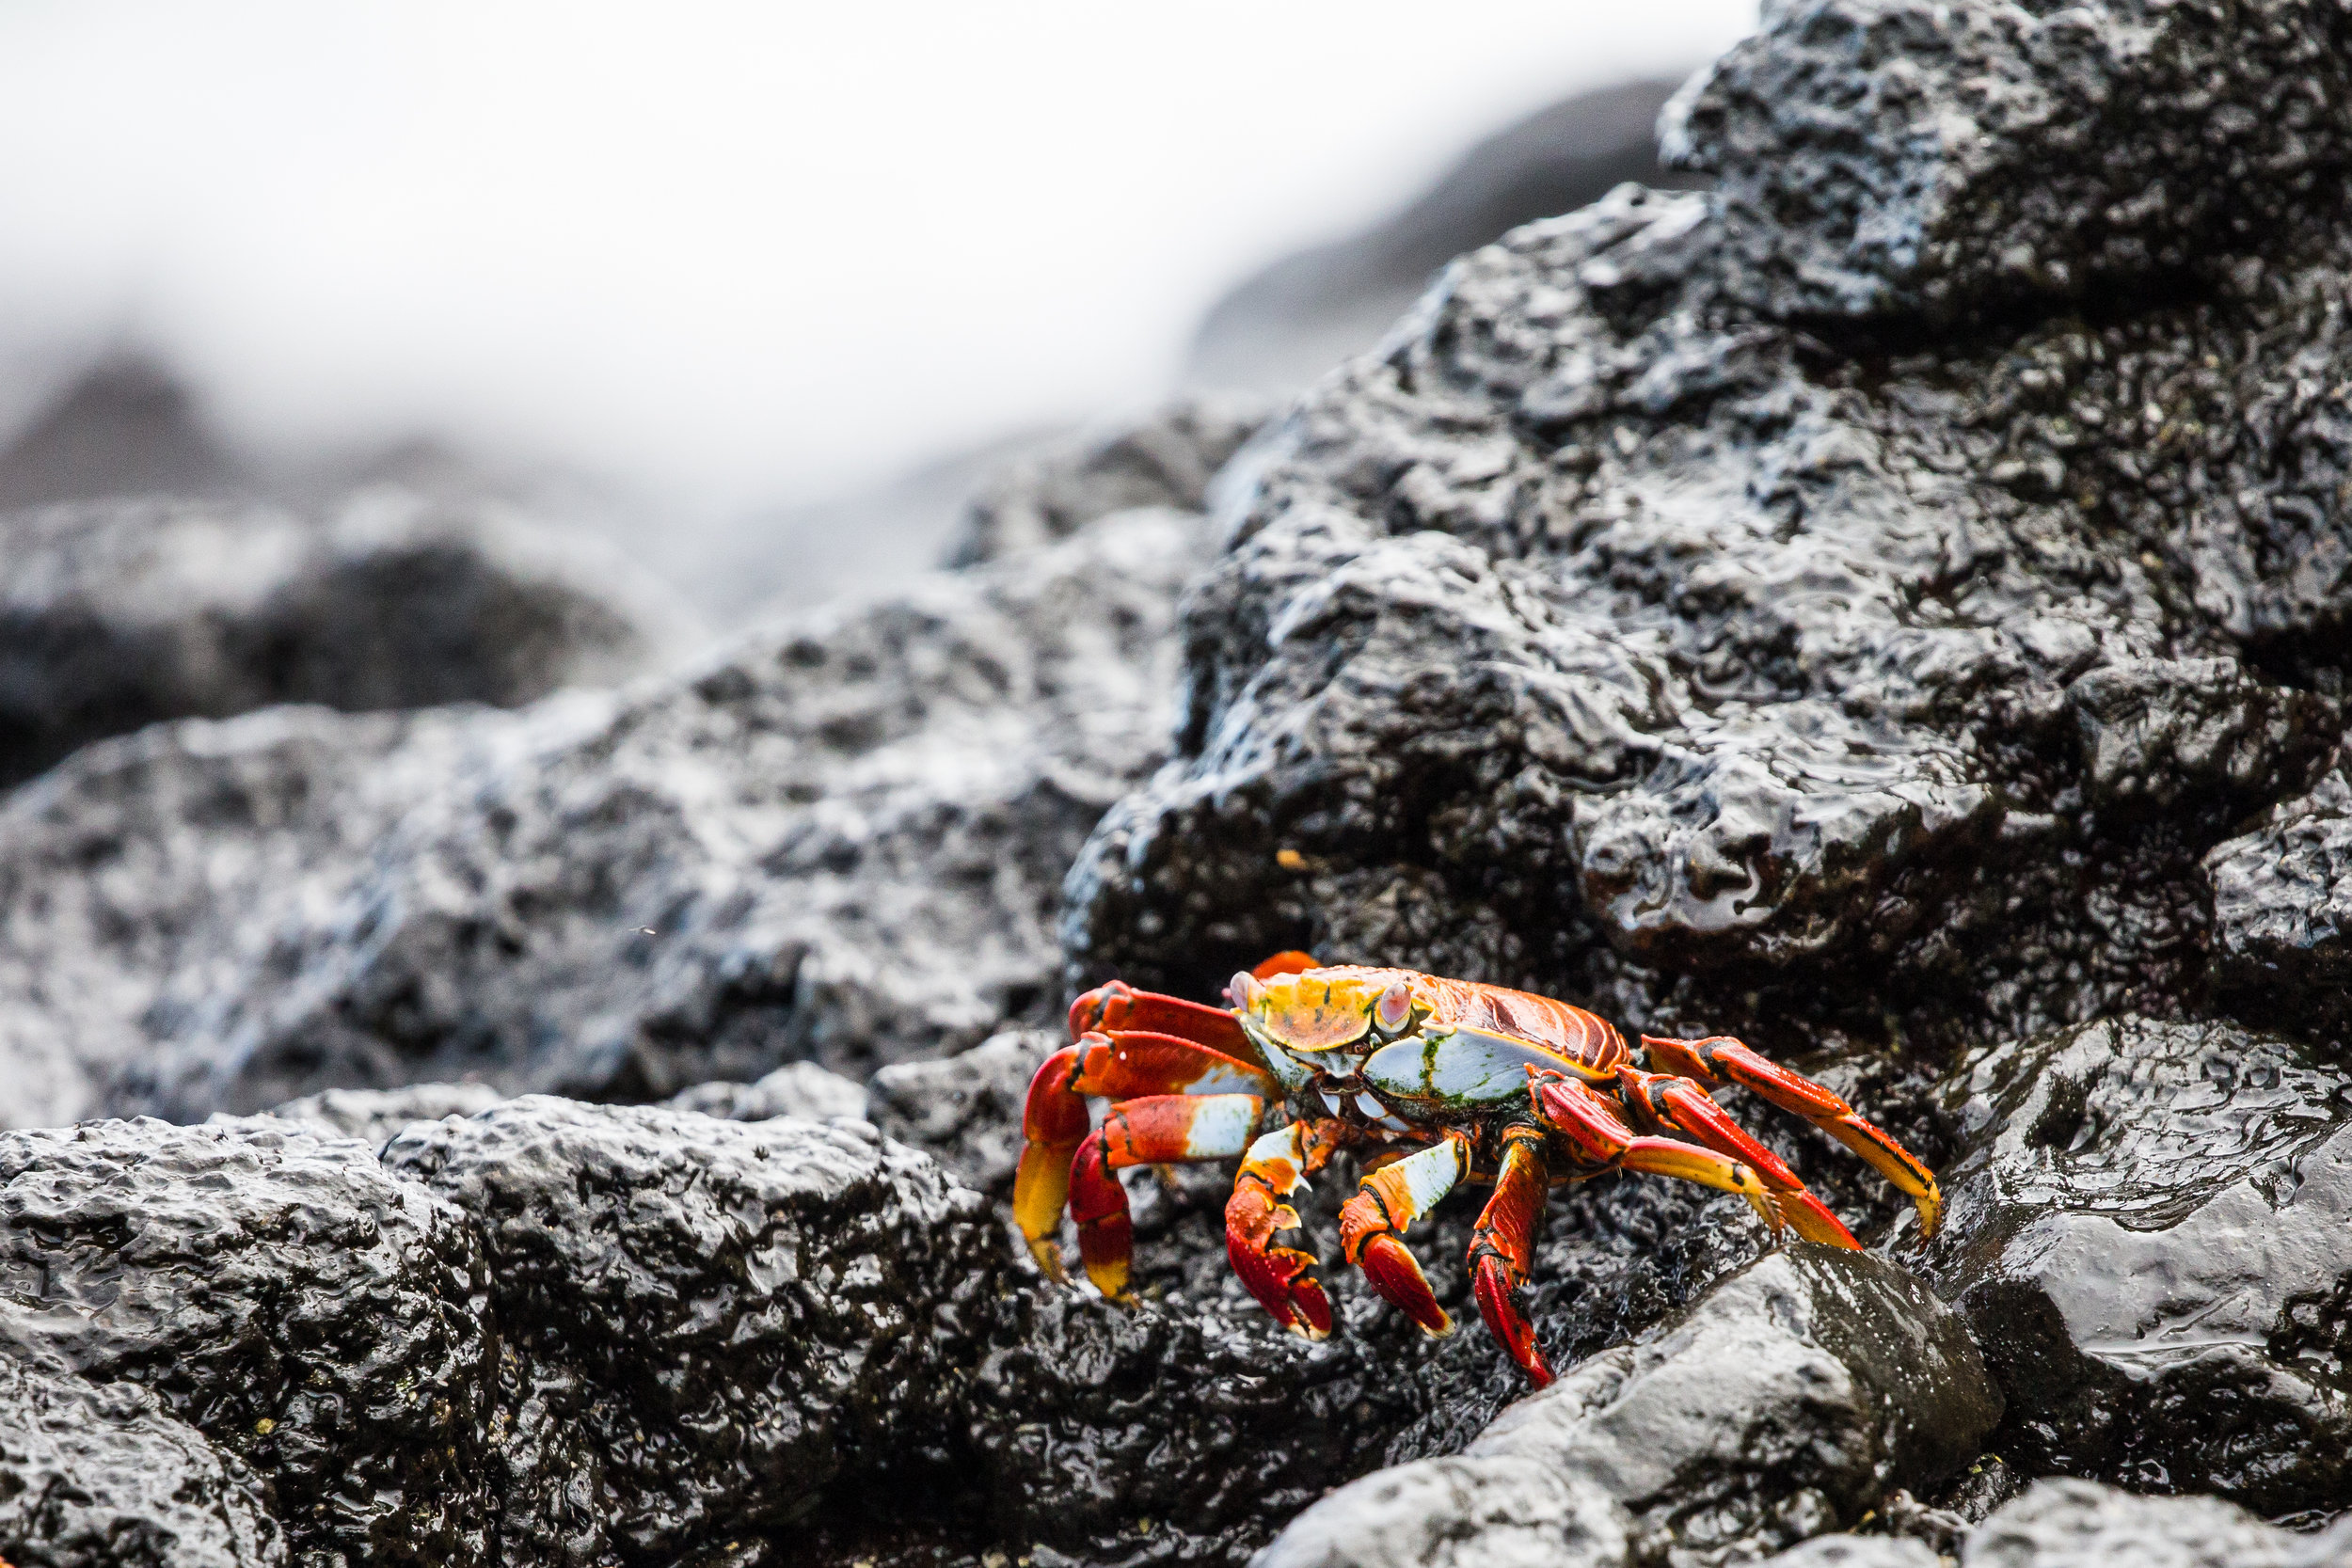 Sally Lightfoot crab (Grapsus grapsus) - These colorful crabs are common along the Pacific coasts of the Americas, and are incredibly quick and agile, running and jumping from rock to rock to escape predators or those of us with cameras. As John Steinbeck quoted when studying them: